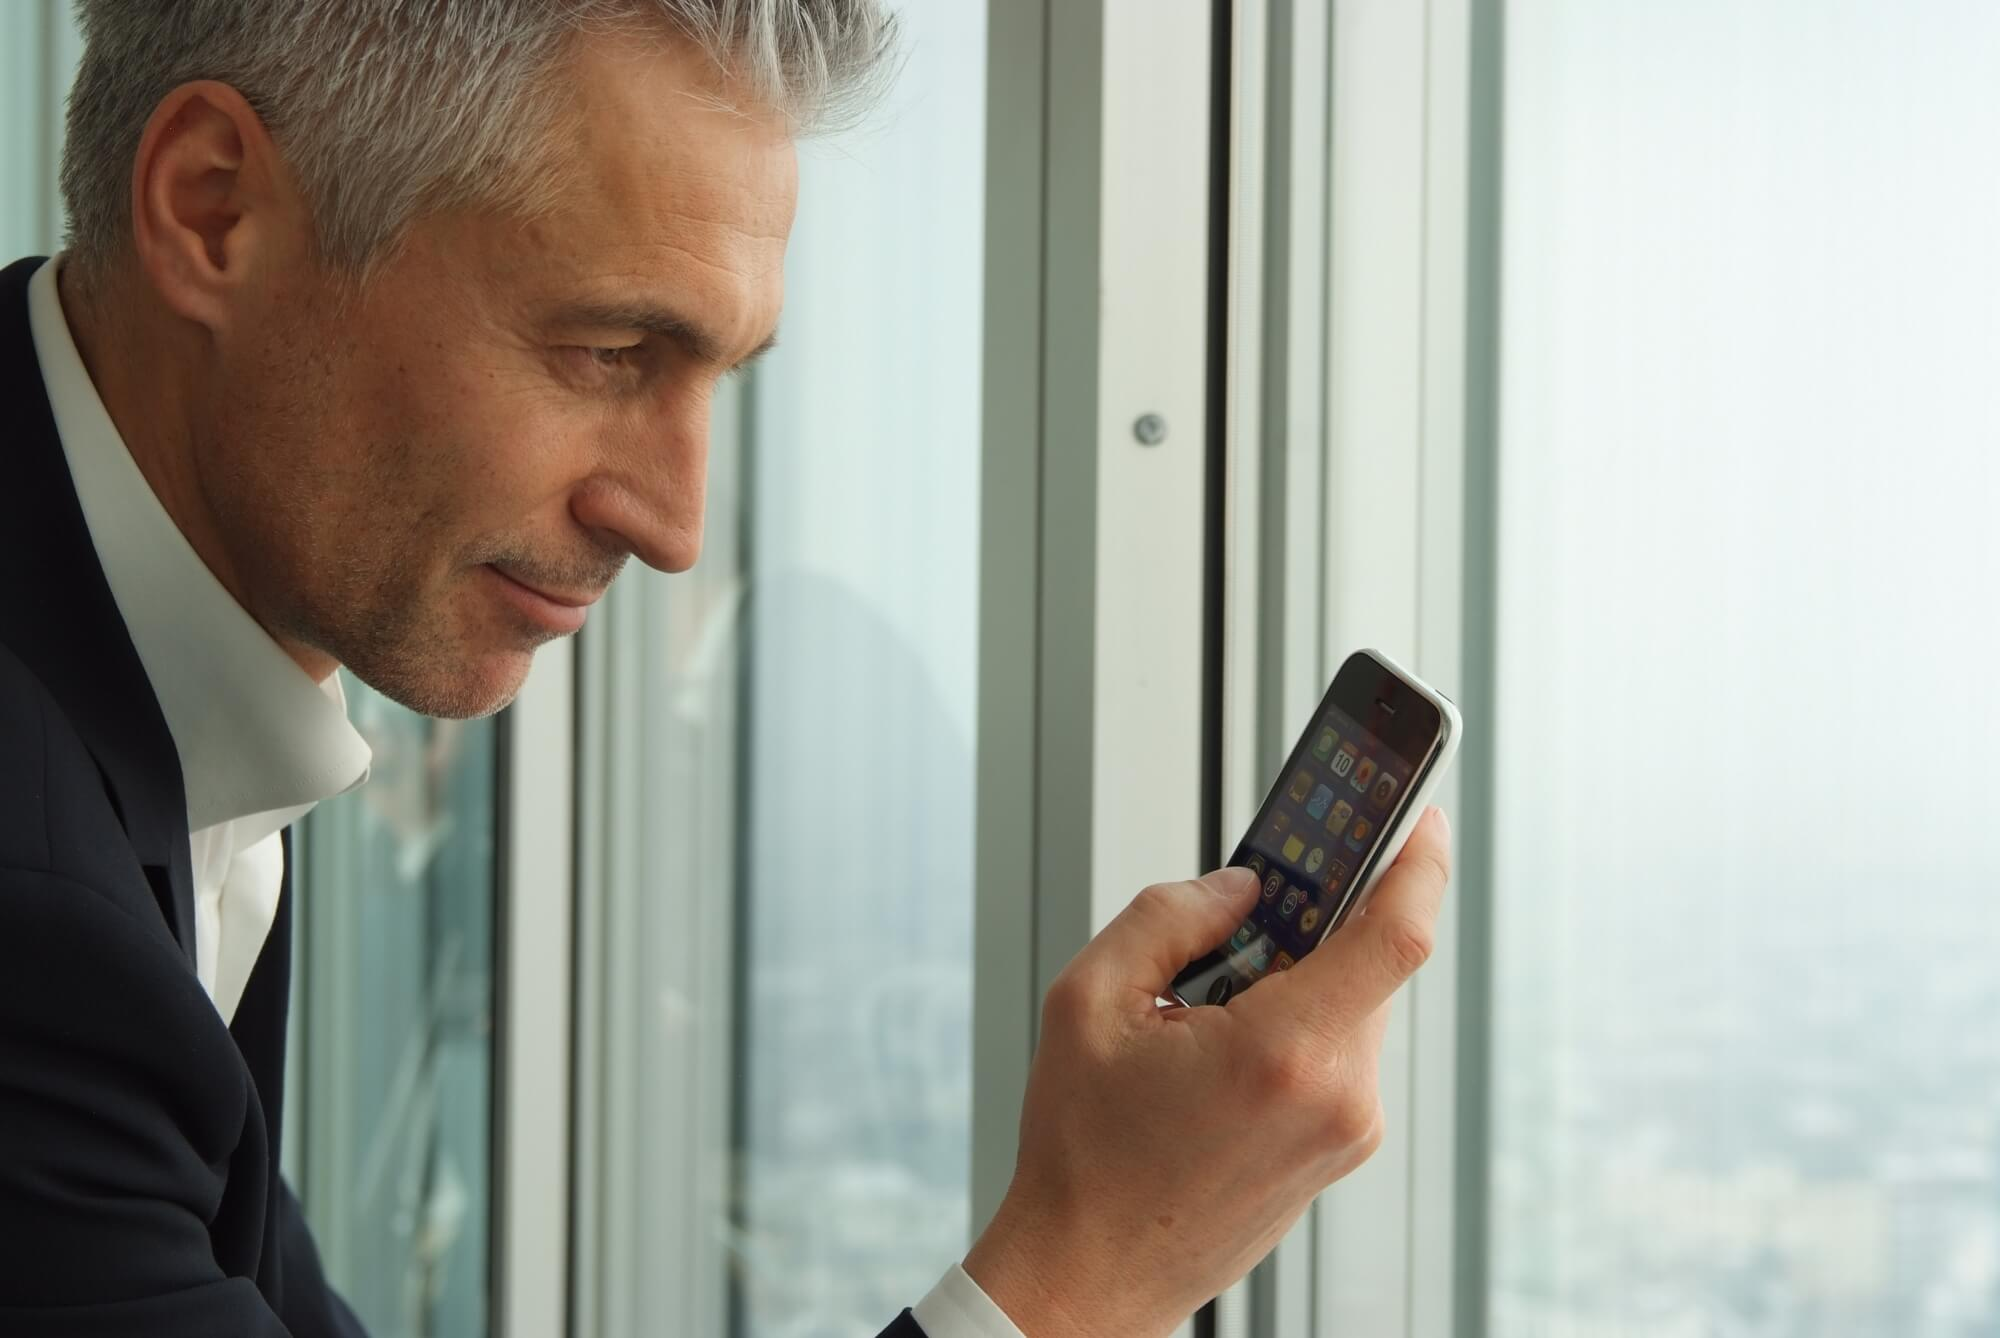 spy on cellphone without installing software on target phone best cell phone spy reviews